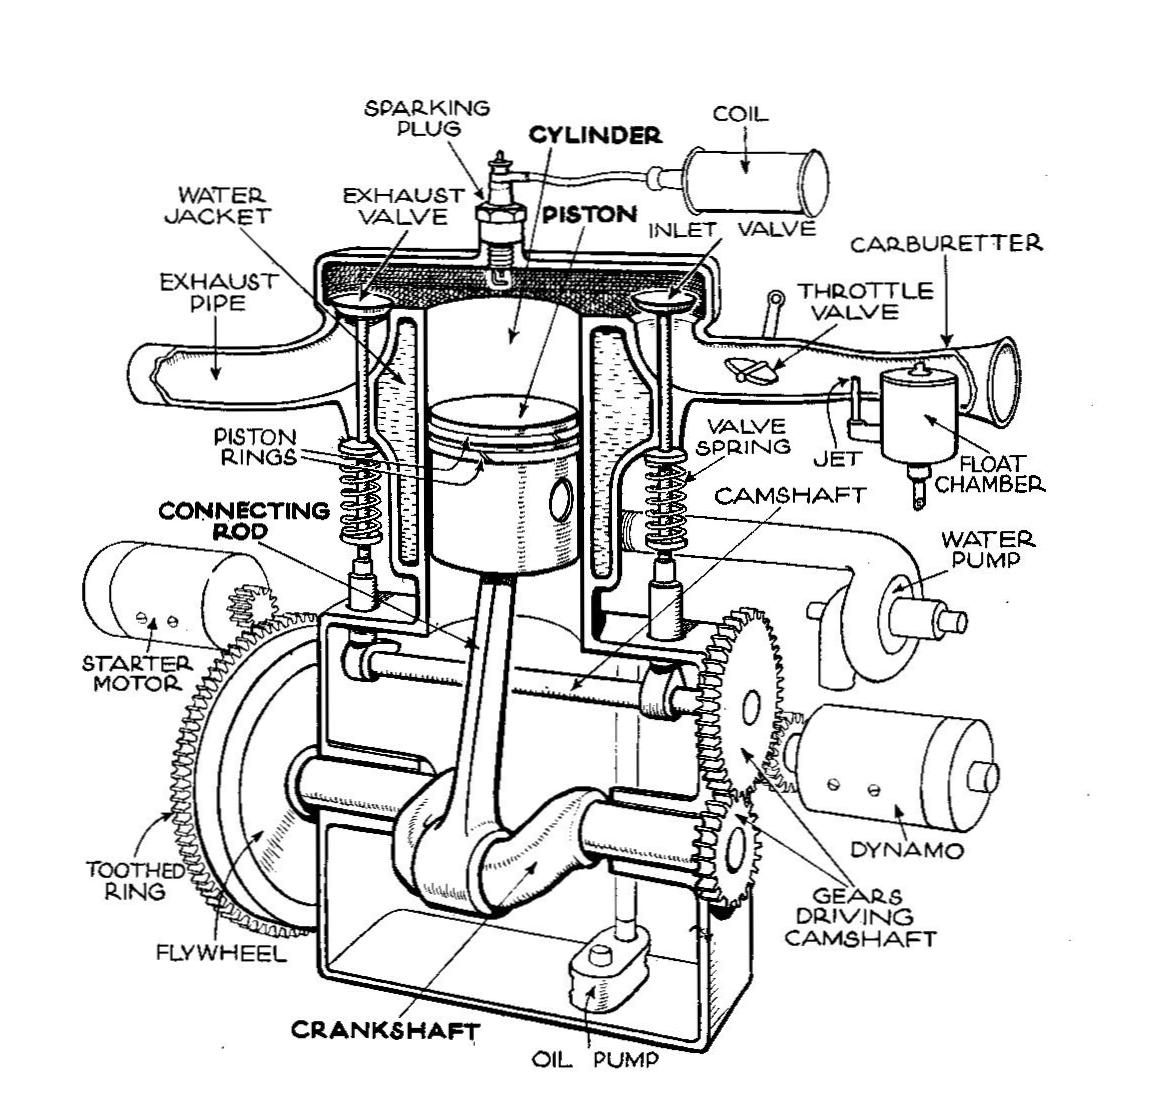 V8 Ford Engine Diagram Wiring Libraries Schematic Yamaha P7000s Flathead Wikipediav8 13